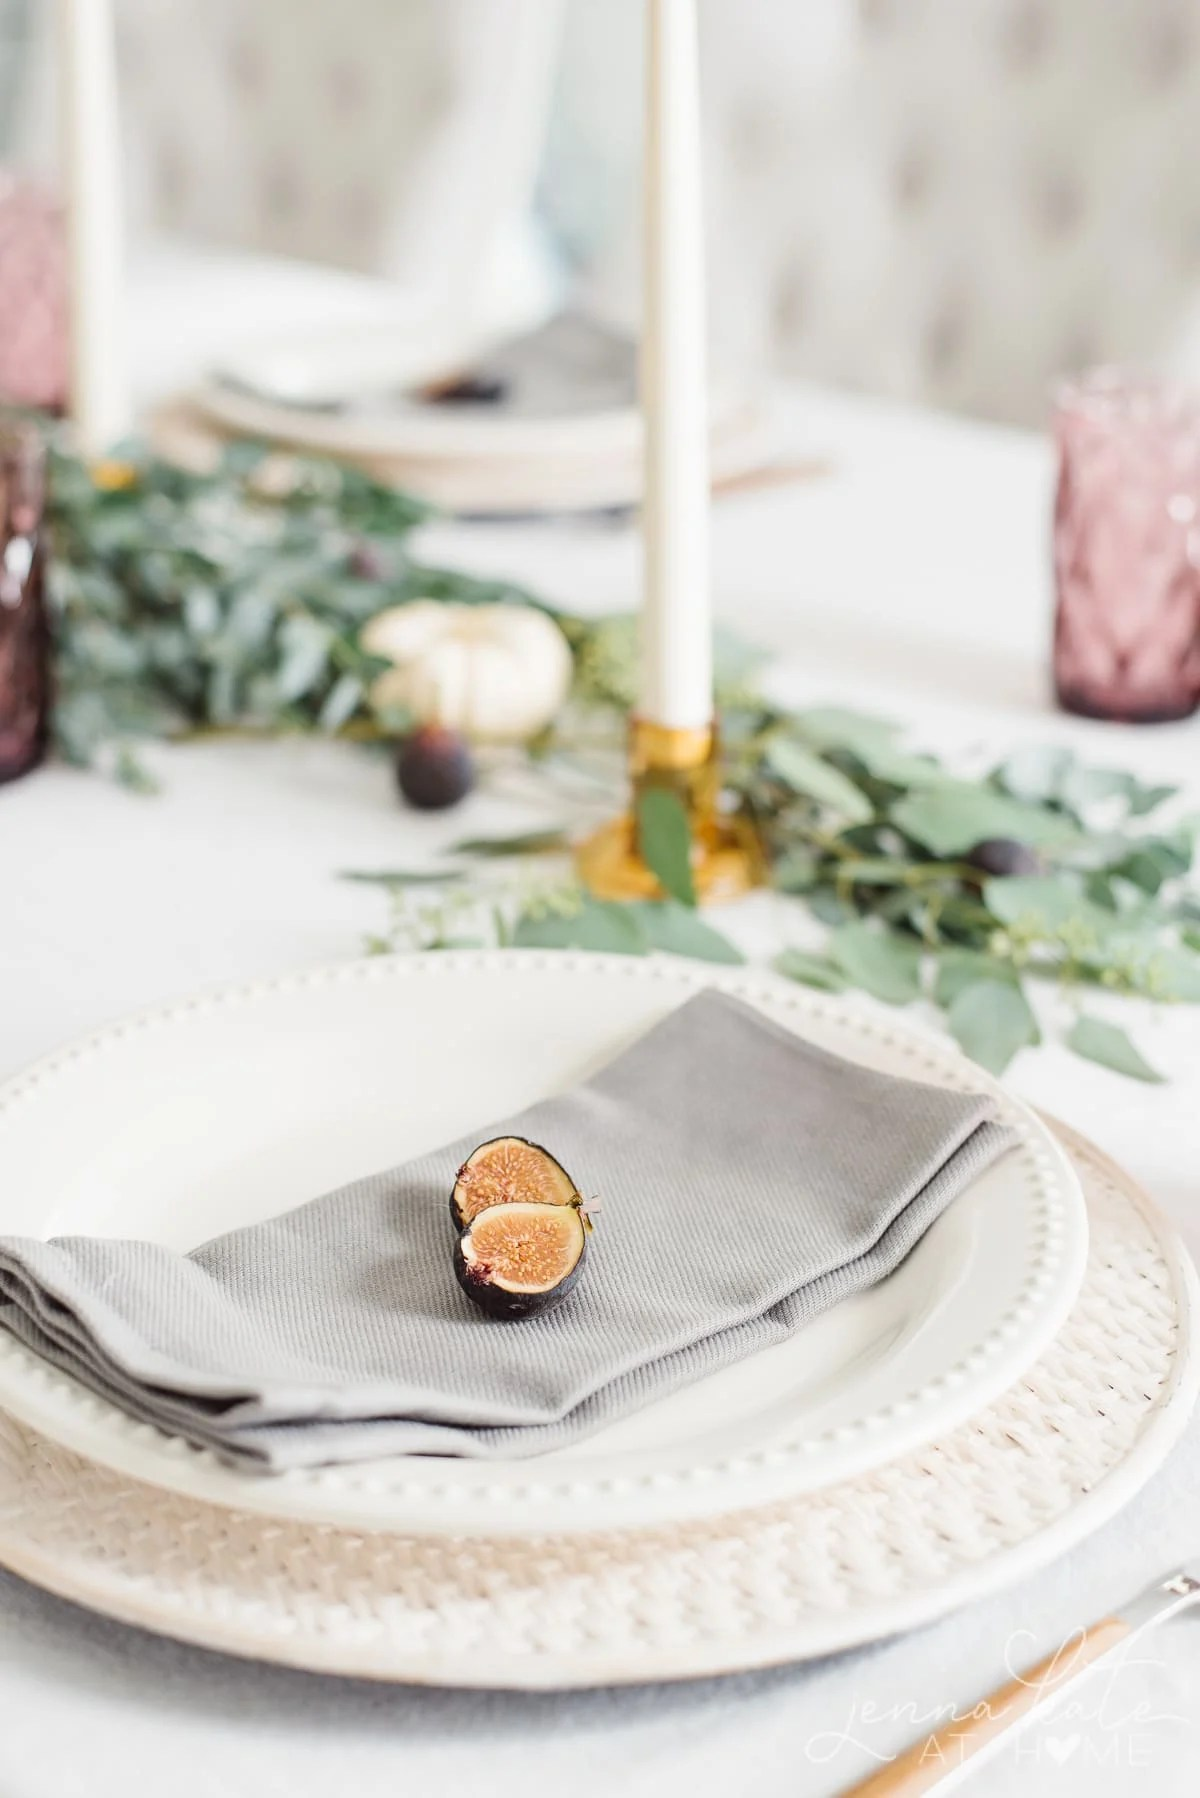 A cut fig is the natural inspiration for the color theme on the tablescape